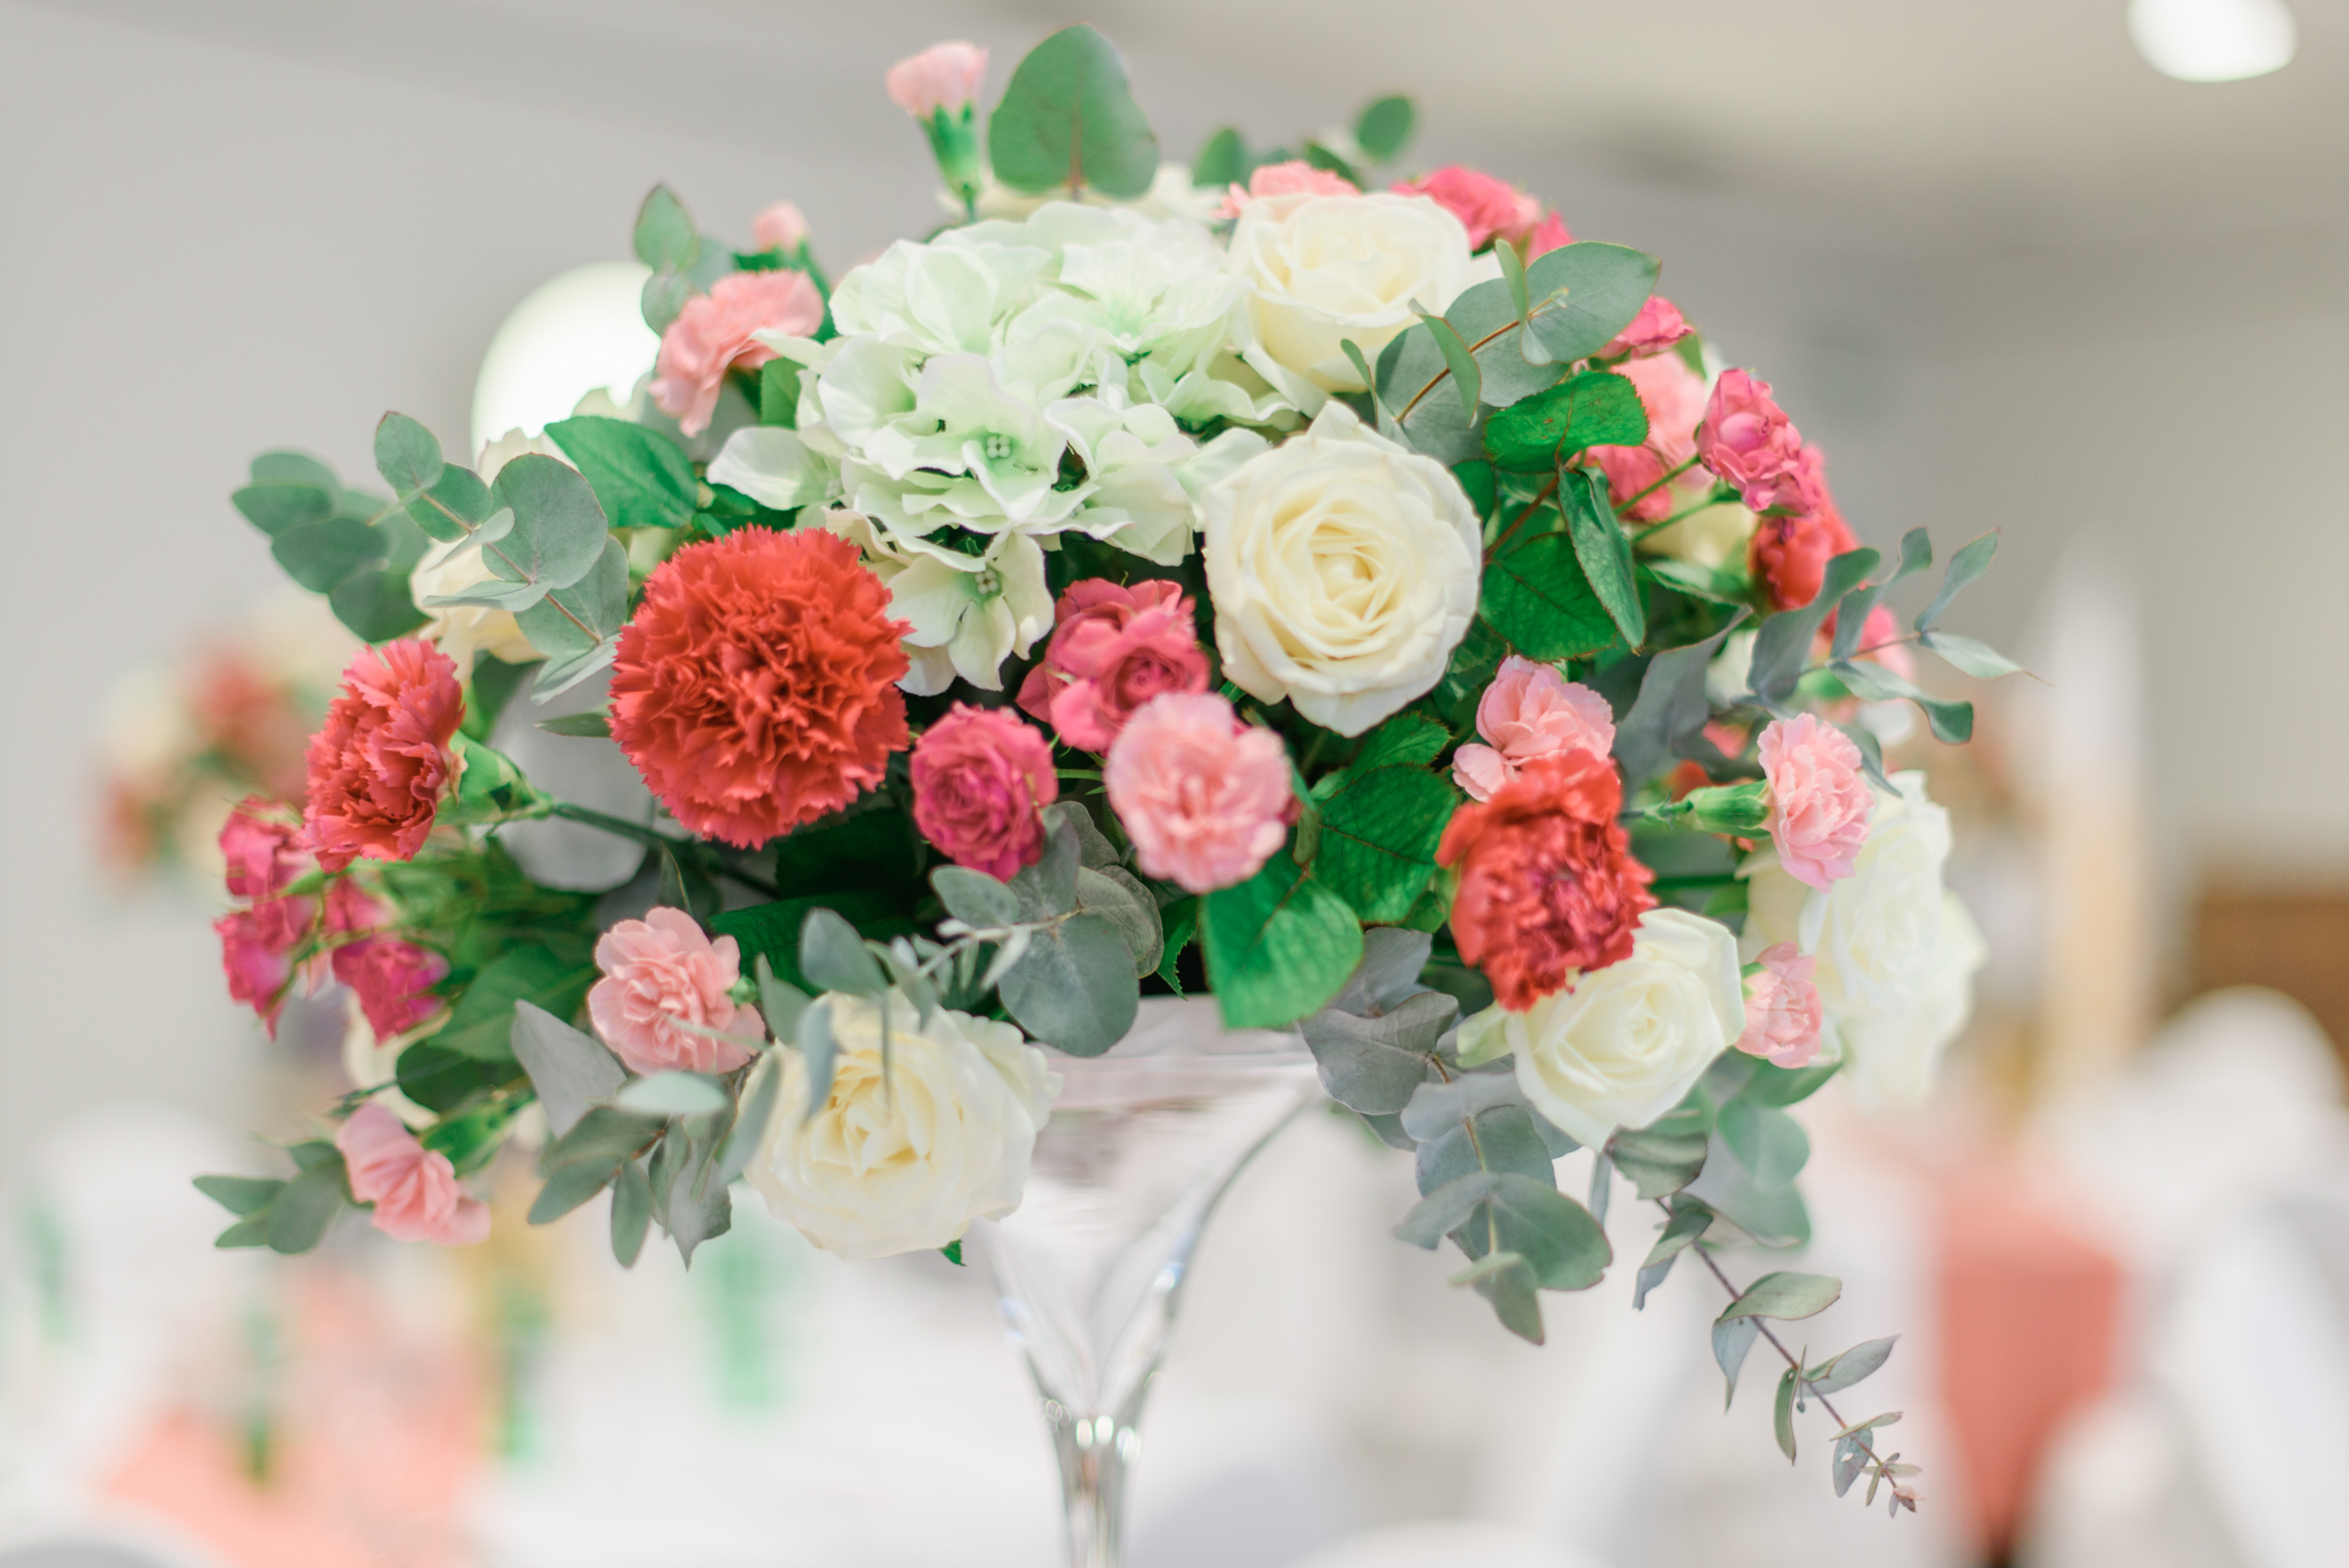 Wedding dhalia fleuriste luxury bouquet of colorful roses in an modern vase on blurred background izmirmasajfo